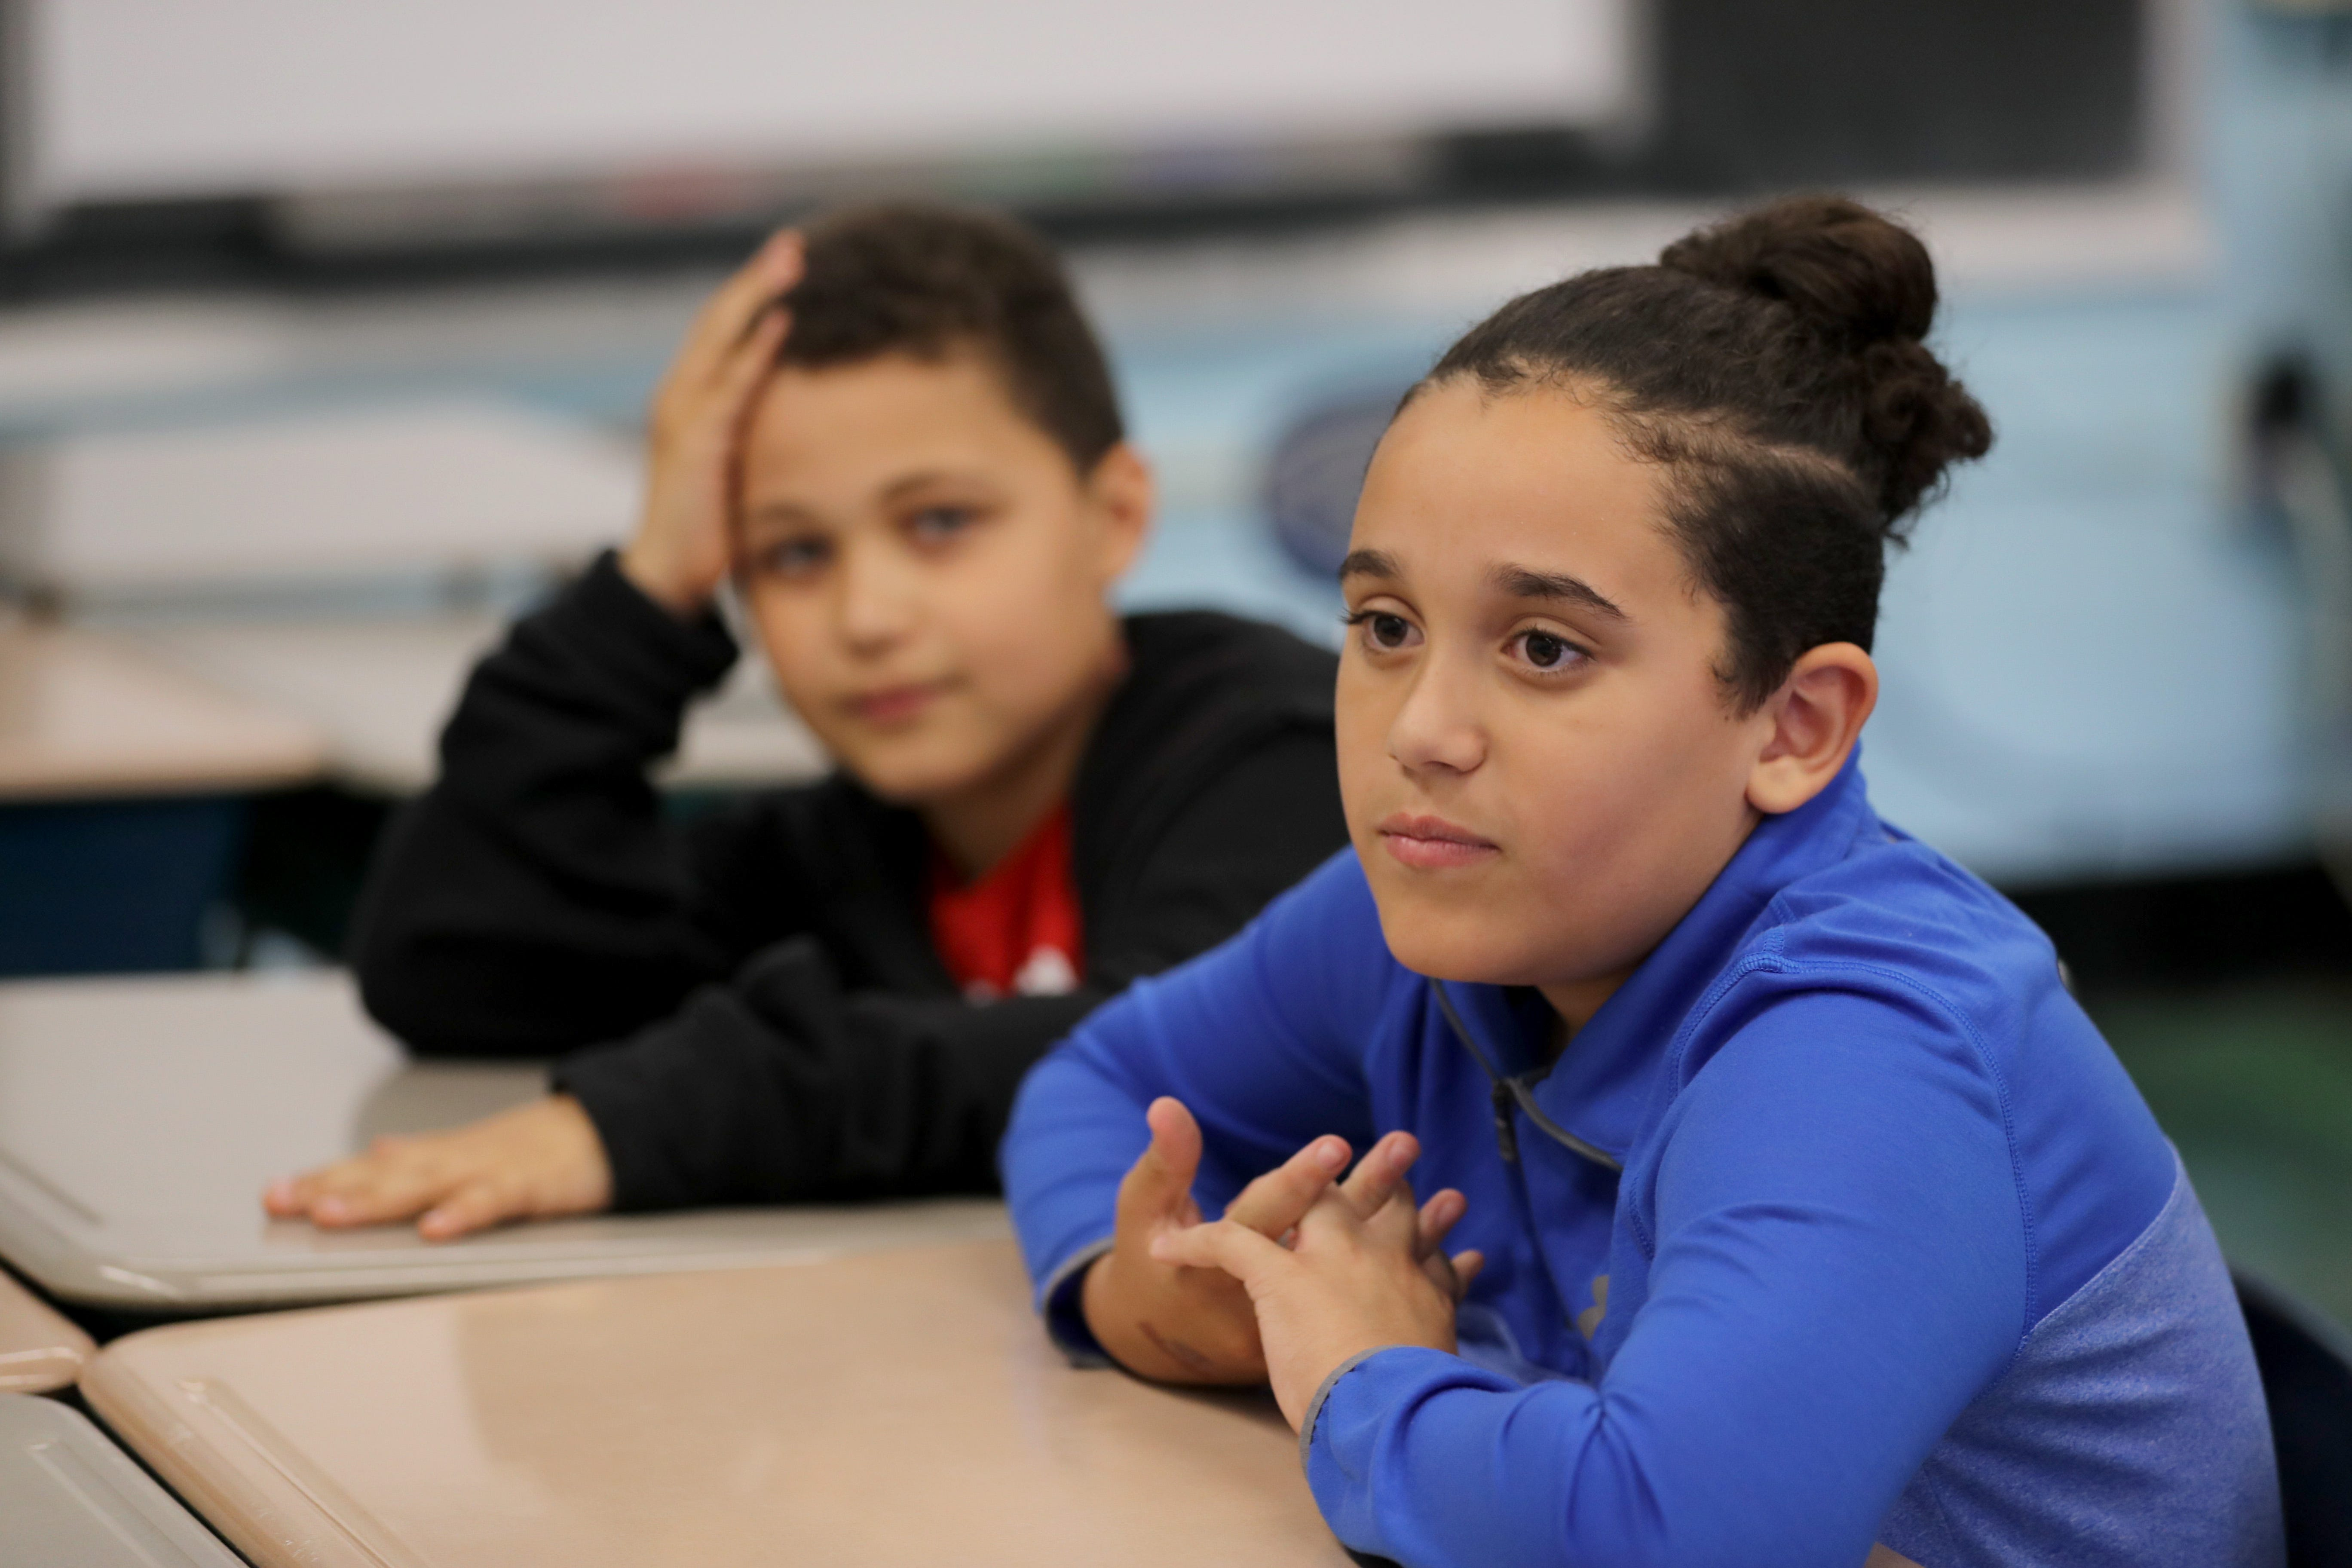 Ban Homework It Doesnt Help Little Kids >> Down With Homework Rockland Petition Prompts Policy Review